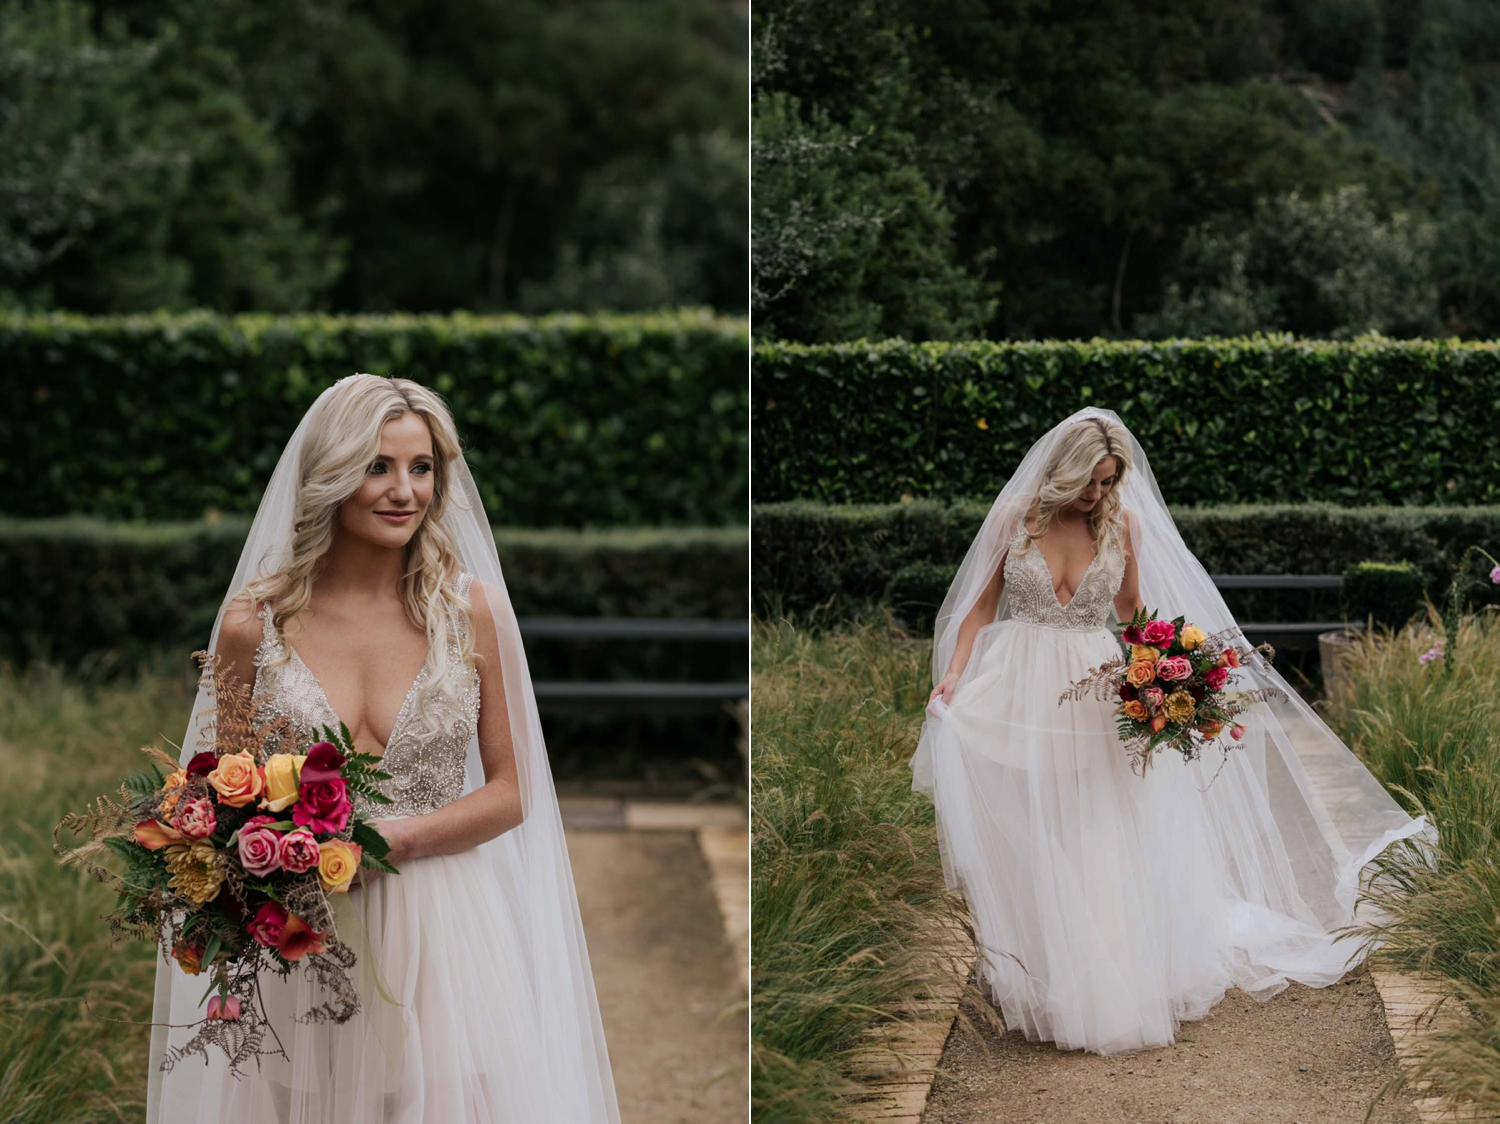 Bride walking down garden path on farm wearing a low cut dress with beautiful and detailed beadwork with a skirt that is see through and cute shorts underneath almost like a jump suit underneath a wedding dress. She is holding a wedding bouquet of burnt orange pink and red flowers and roses with dried ferns and grass in it.